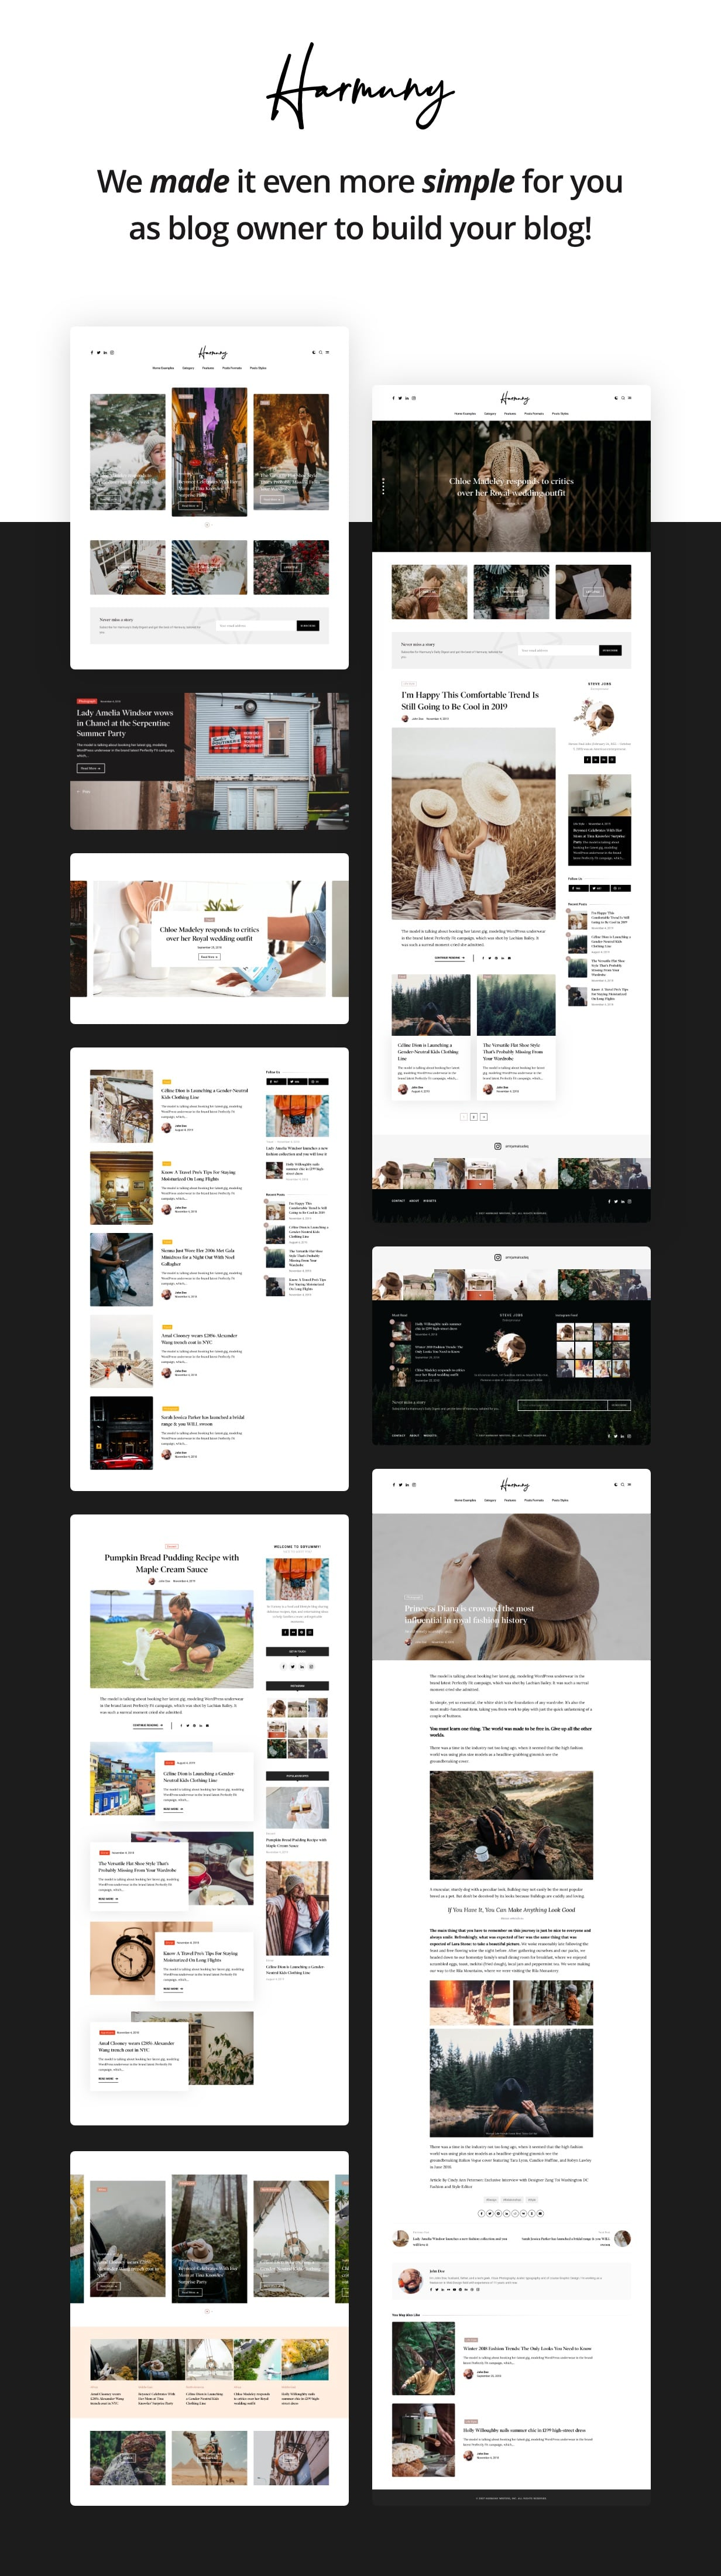 Harmuny — A Responsive WordPress Blog Theme - 1